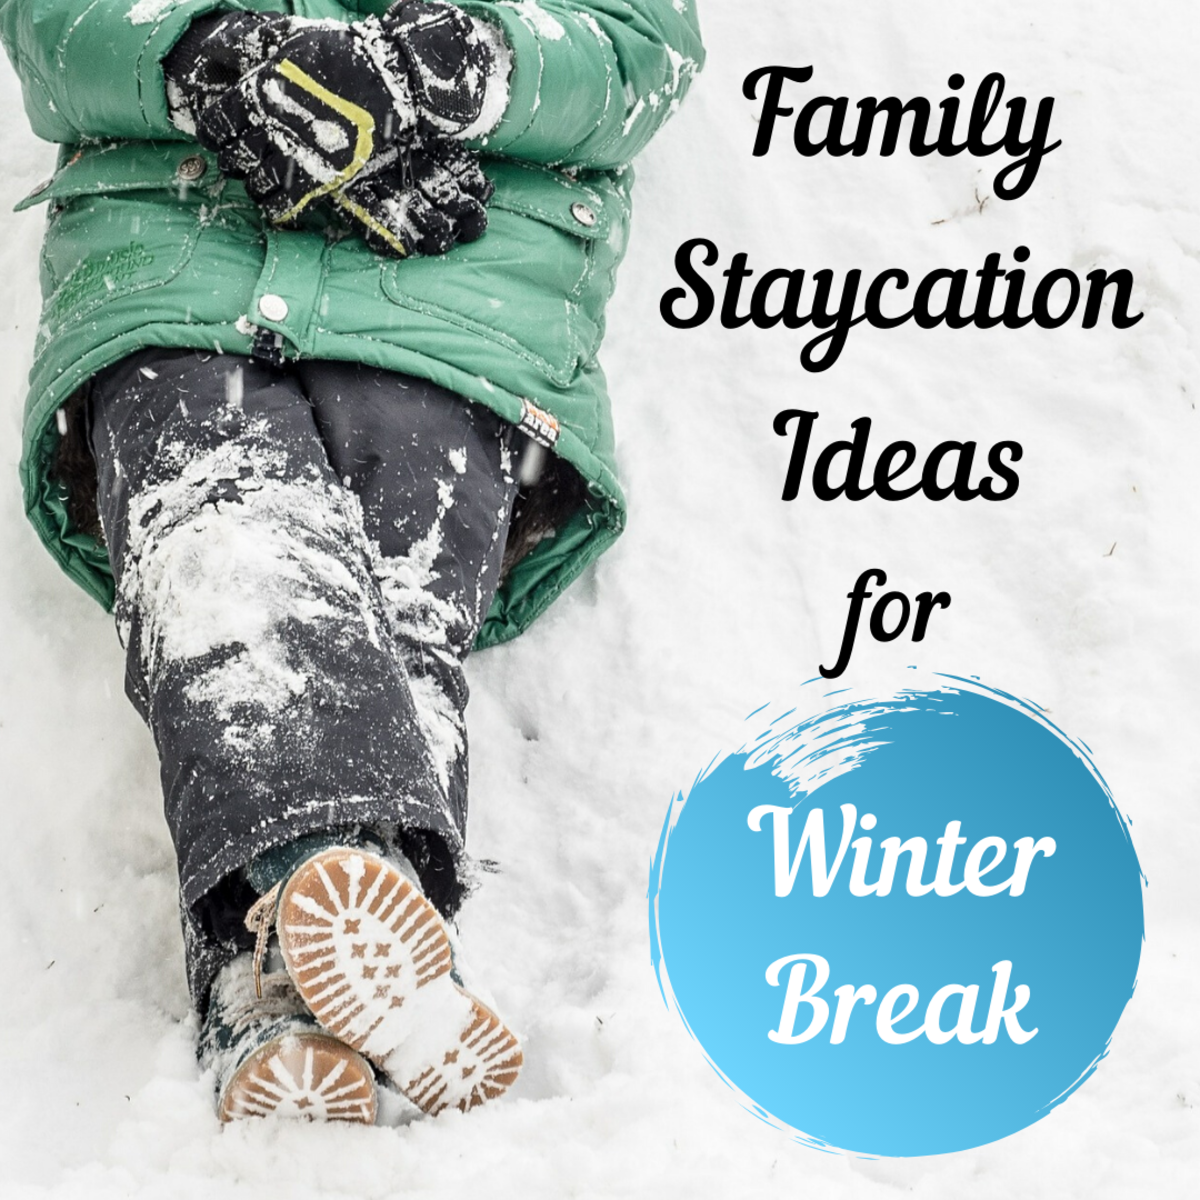 You don't need to take an expensive trip to keep the kids happy over winter break. Try these fun, easy activities at home or in your neighbourhood!